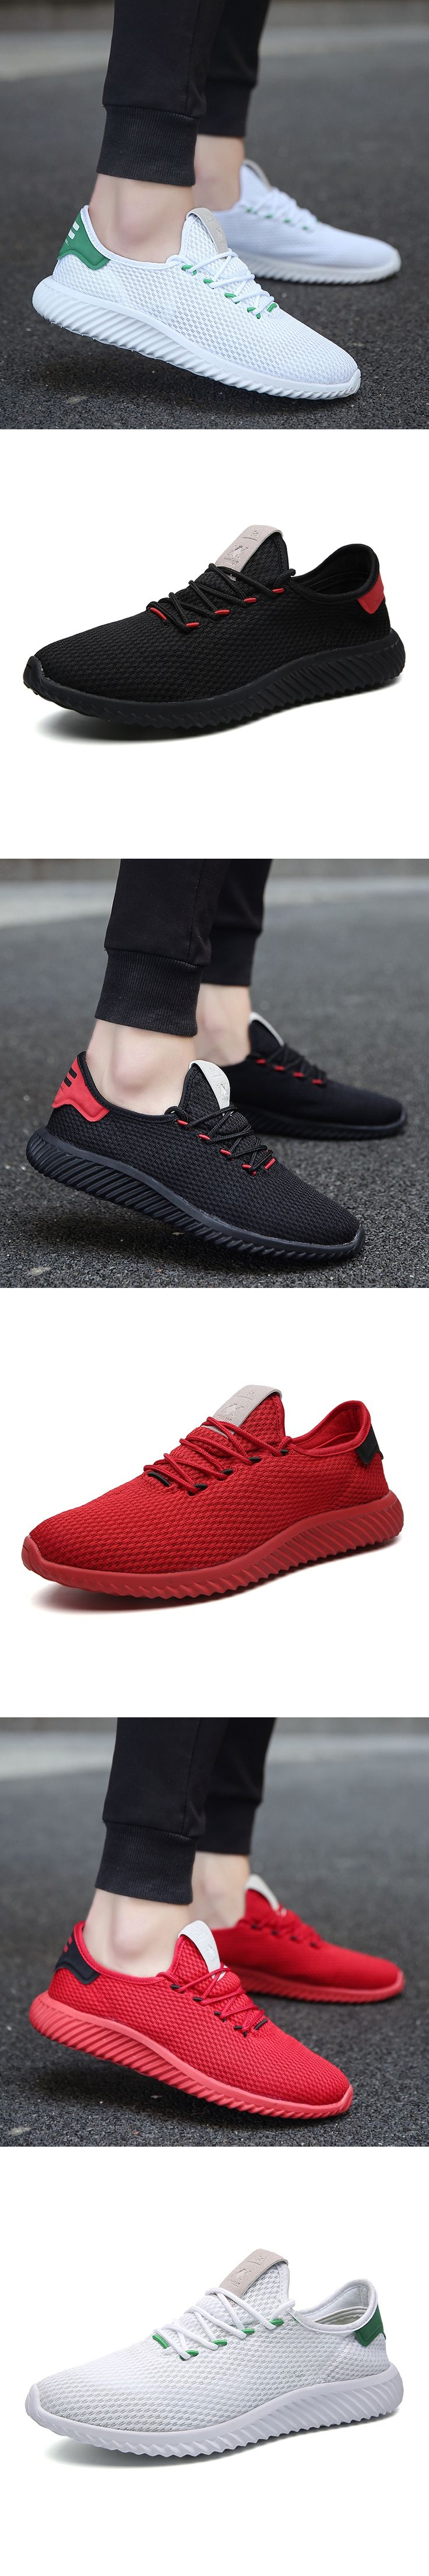 2017 summer Sport running Shoes Mens Breathable sneakers Trainers outdoor Zapatillas Hombre Presto superstar shoes